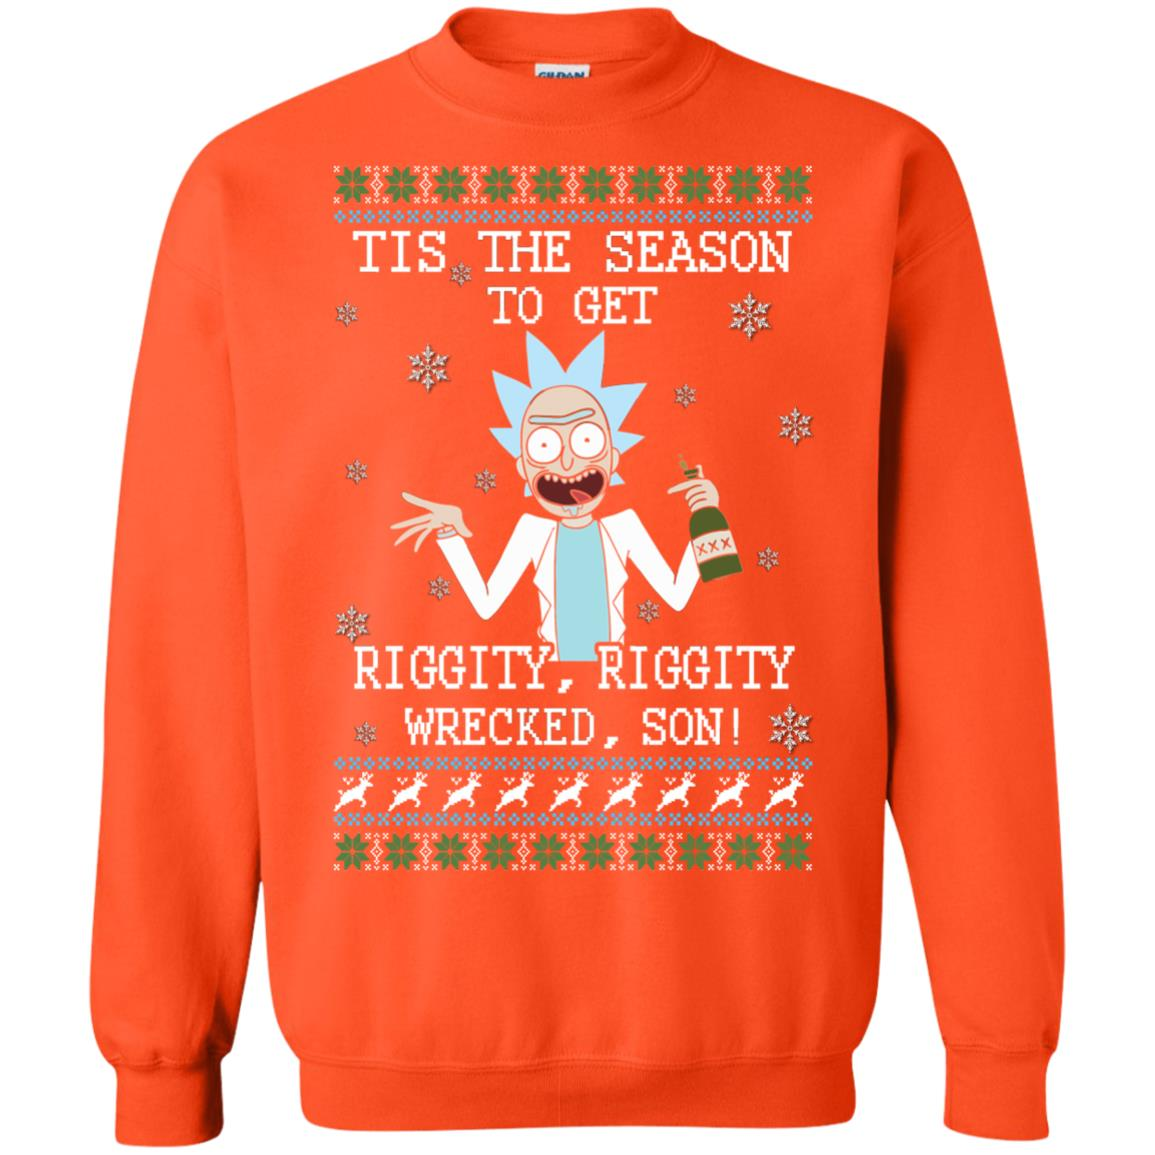 image 585px Rick and Morty Tis The Season To Get Riggity Wrecked Son Christmas Sweater